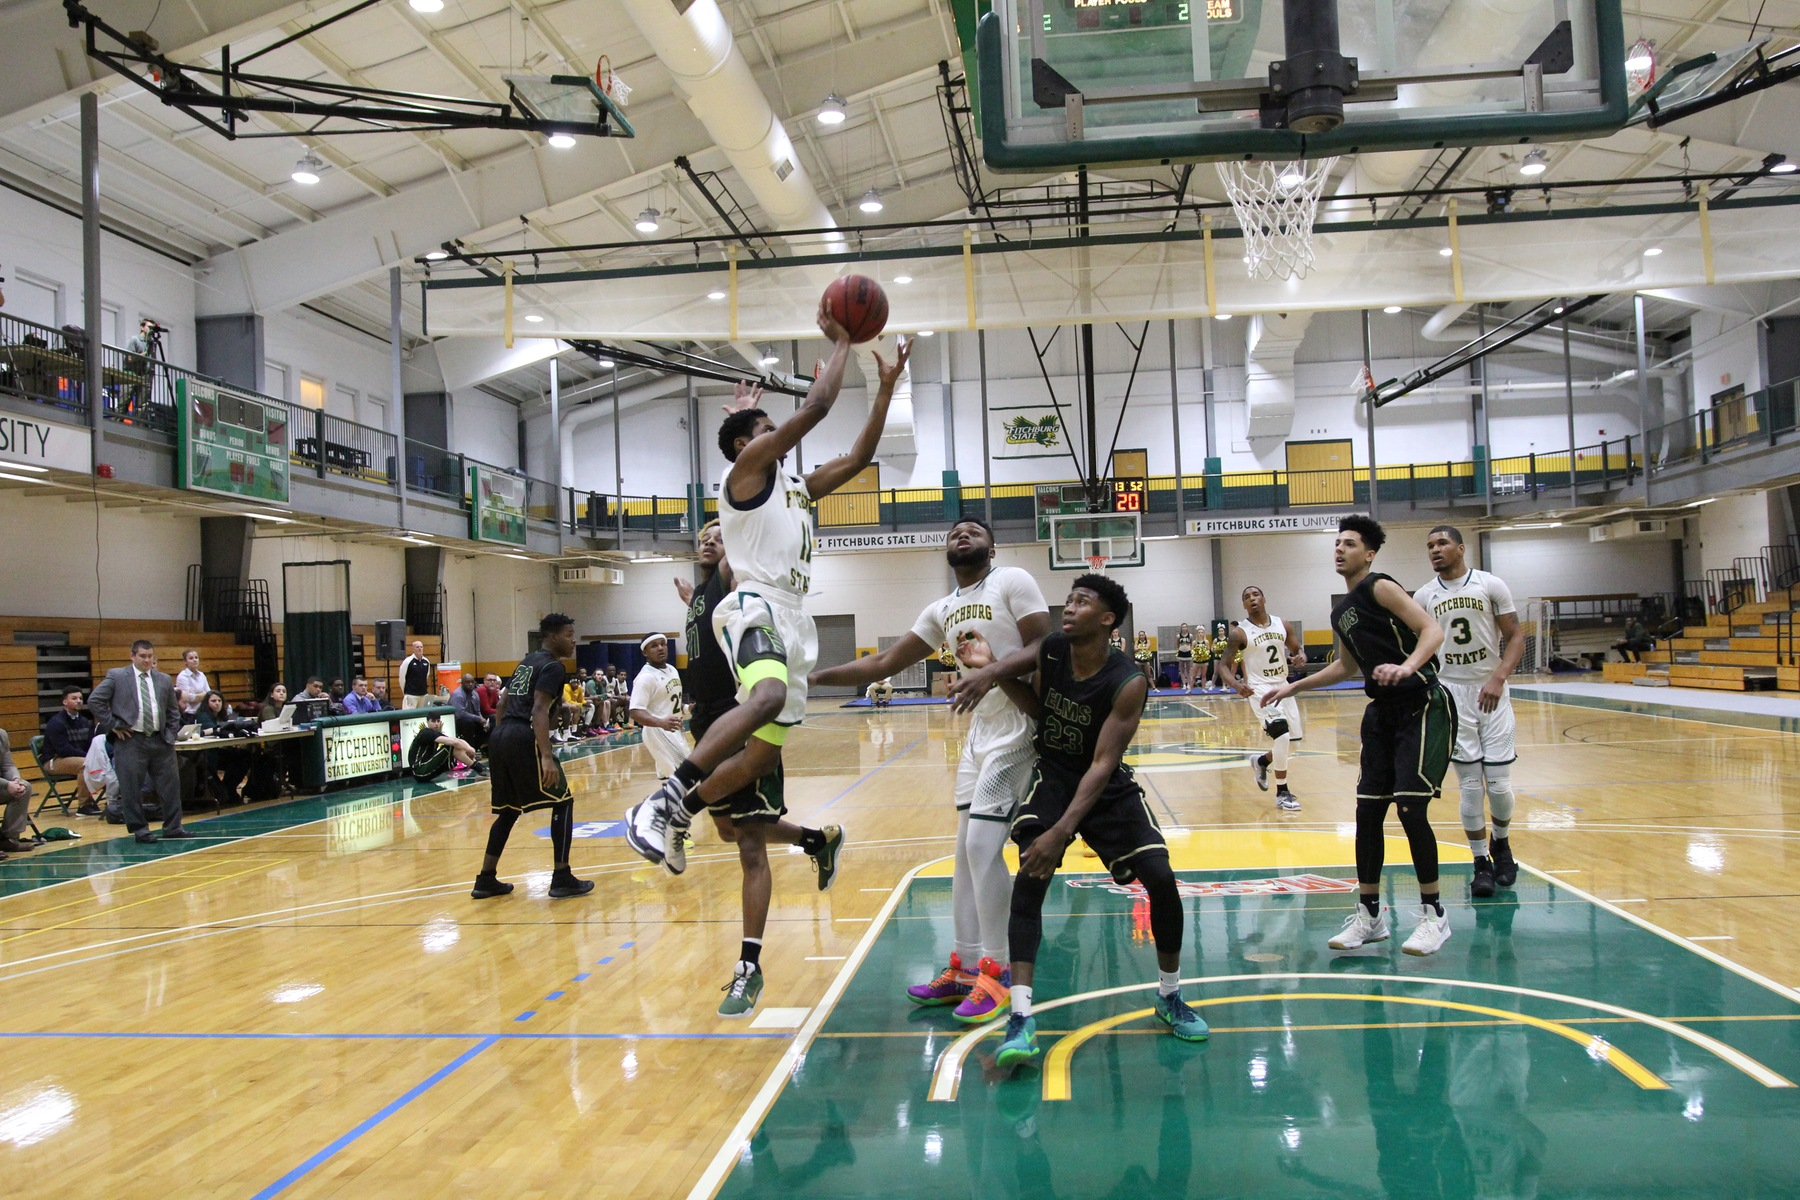 Fitchburg State Grazed by Williams, 68-64